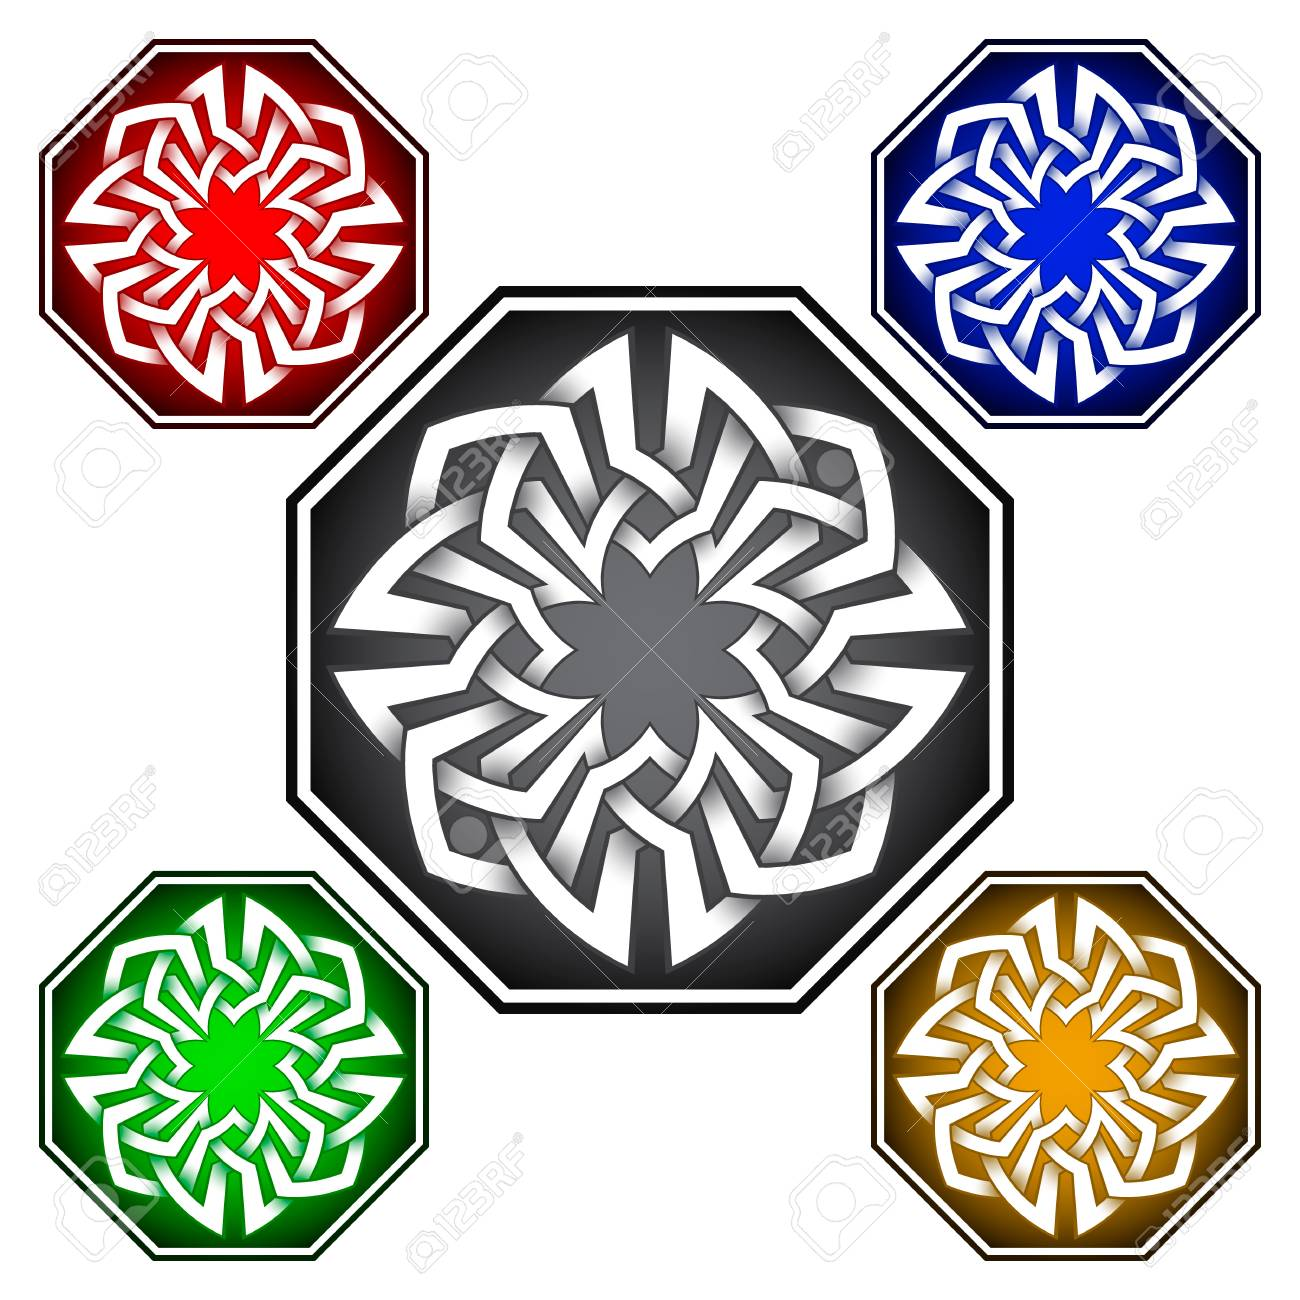 Octagonal Icon Template In Celtic Knots Style Stylish Tattoo